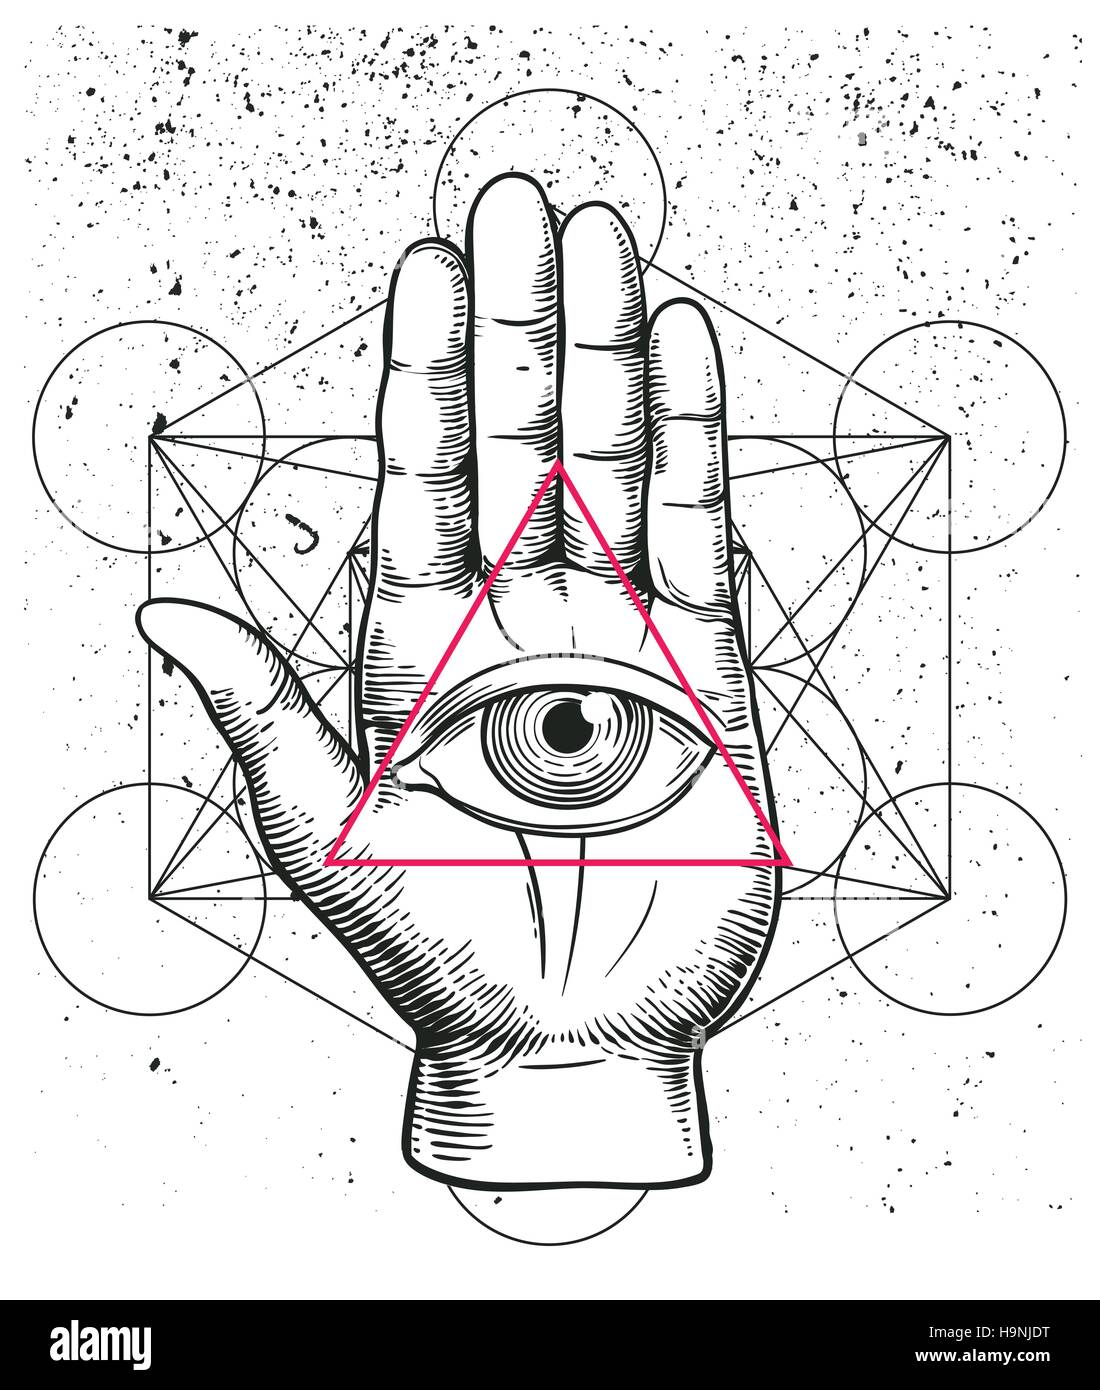 90a49bb29b3d7 Hipster illustration with sacred geometry, hand, and all seeing eye symbol  nside triangle pyramid. Eye of Providence. Masonic symbol. Grunge Esoteric